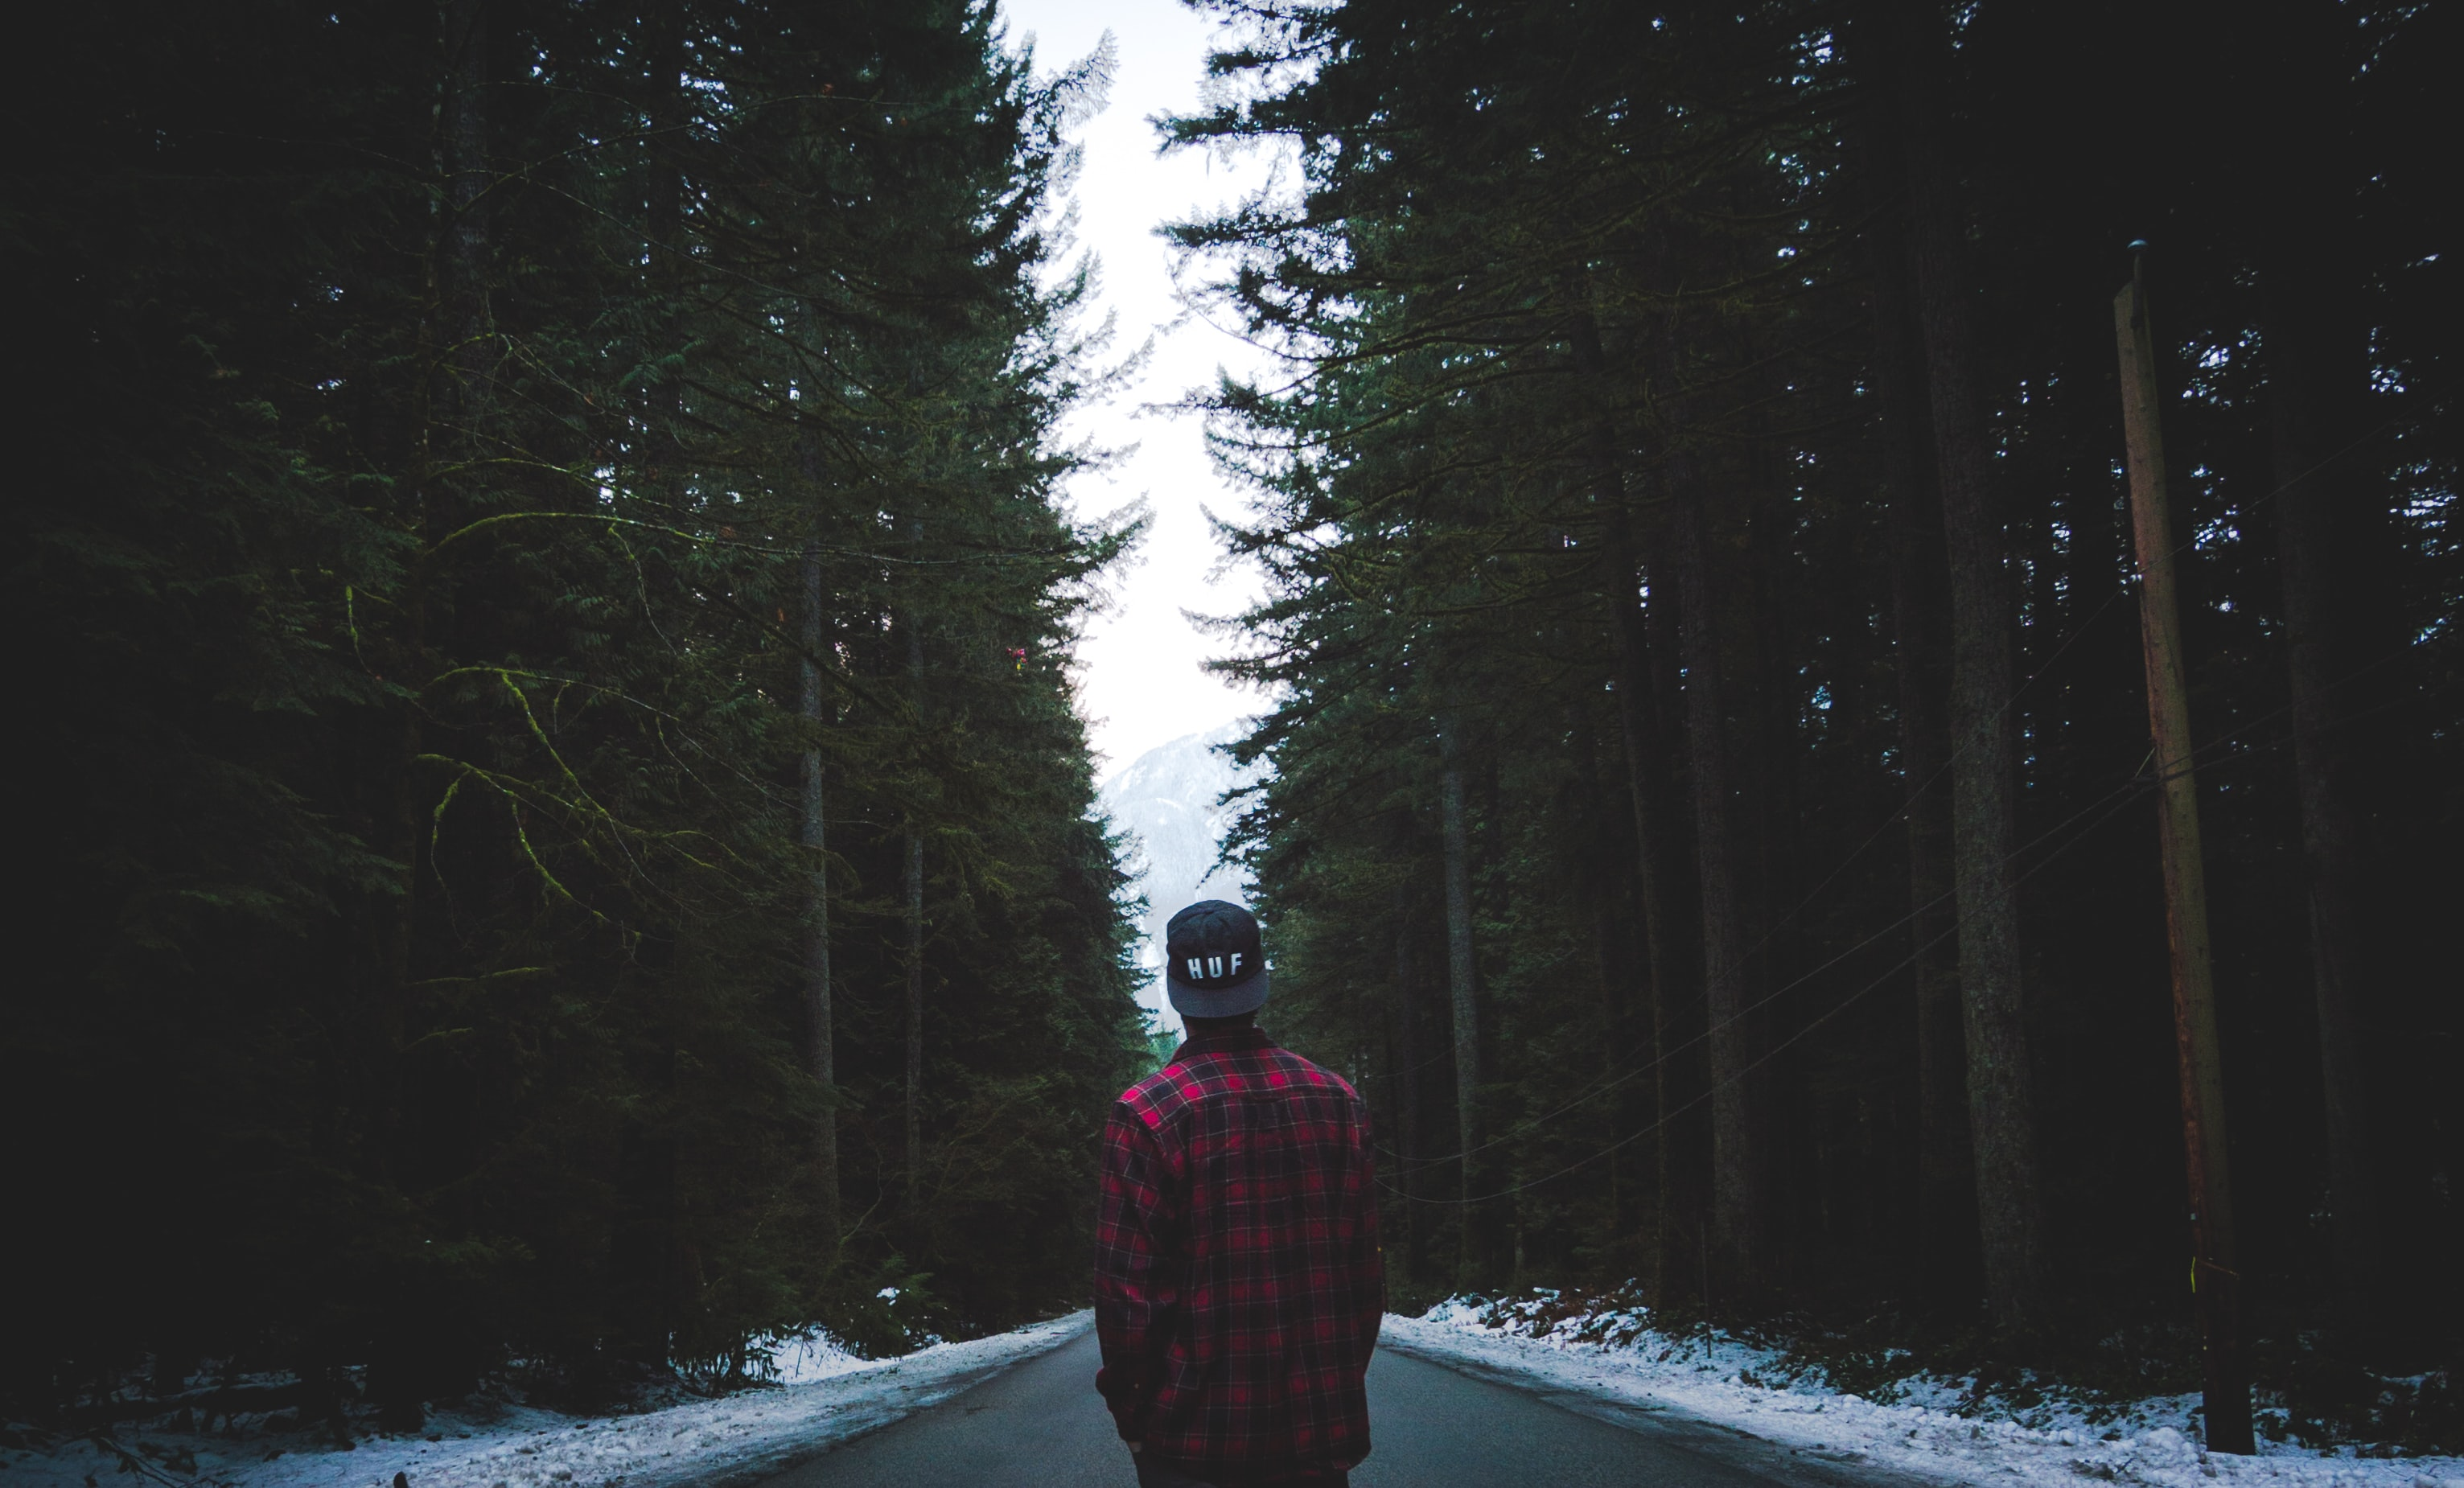 A man in a red plaid shirt with a backwards hat staring down a forest road during winter in Squamish, British Columbia